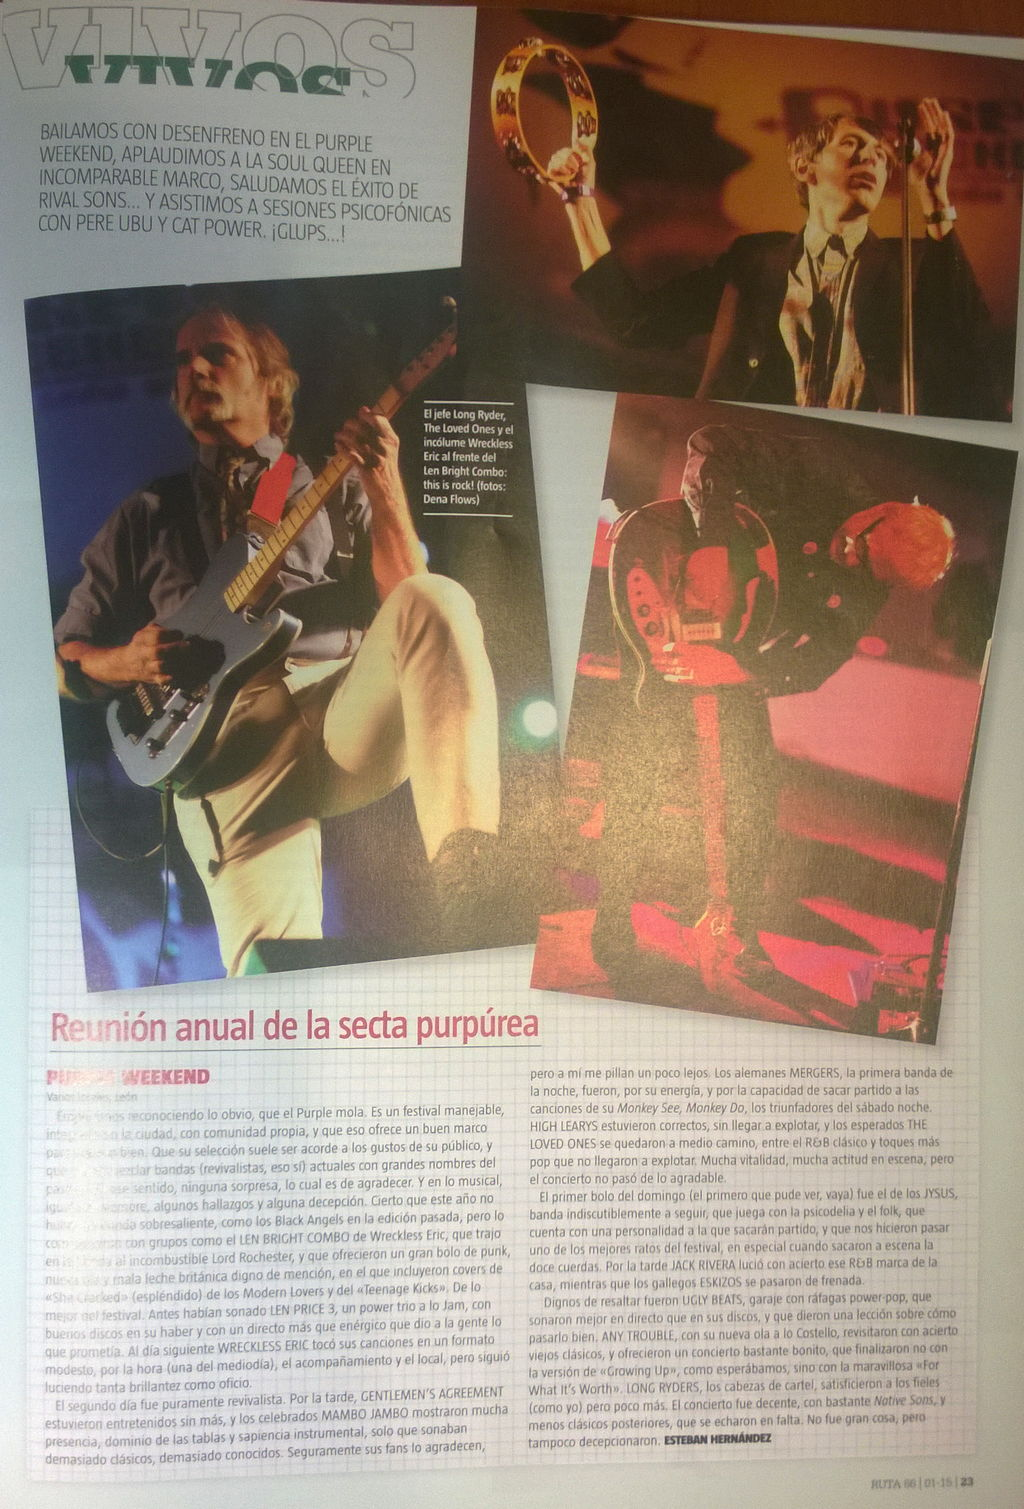 Captura de la crónica y fotos del festival Purple Weekend 2014 en Ruta 66 (enero de 2015)